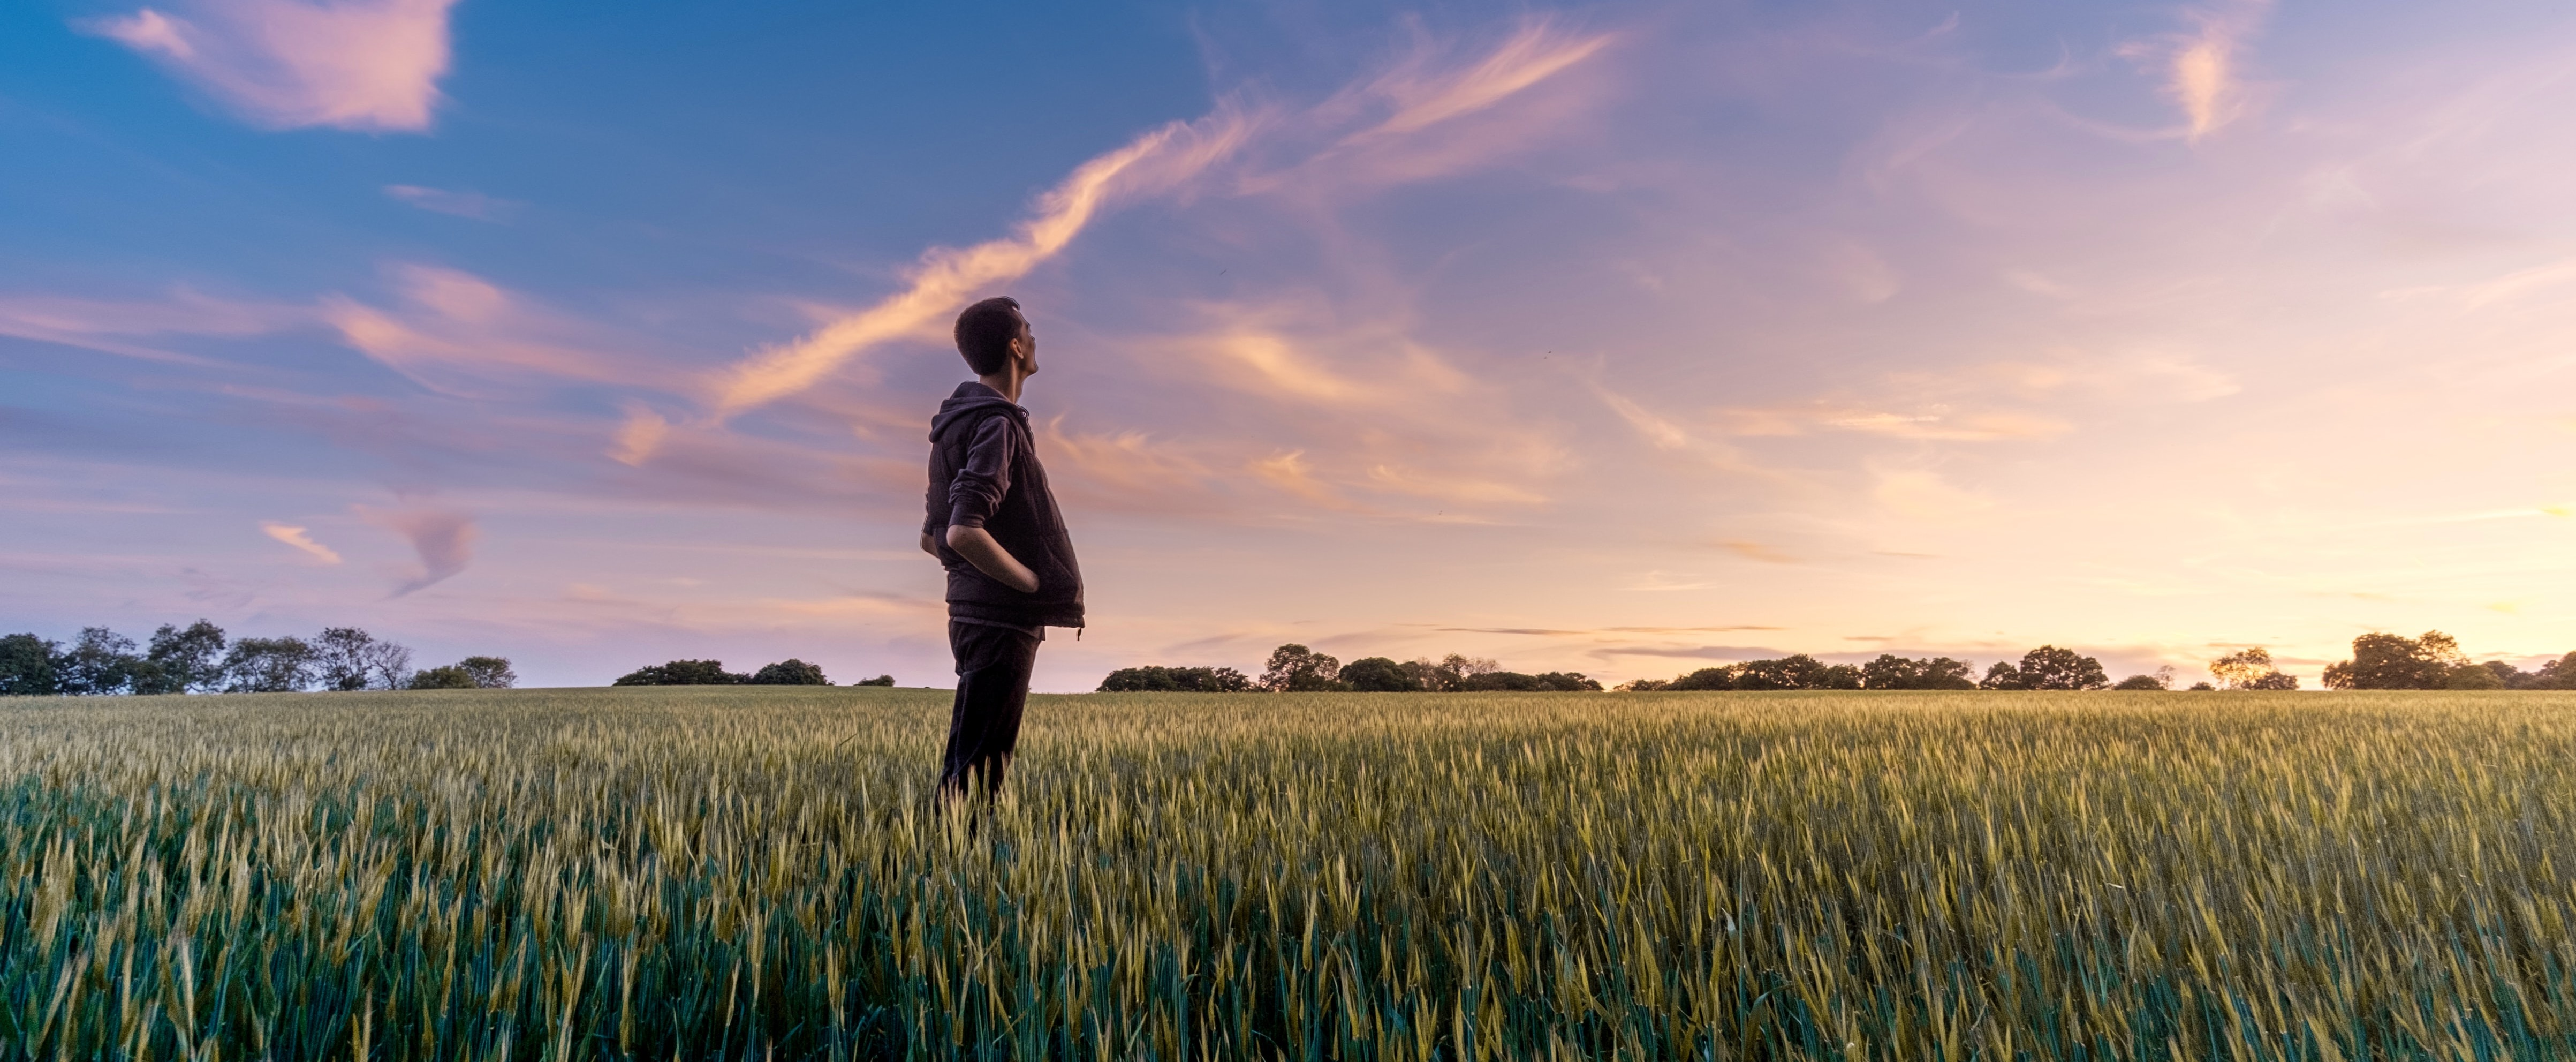 A horticultural scene - a man  standing in a field of wheat watching the sunset